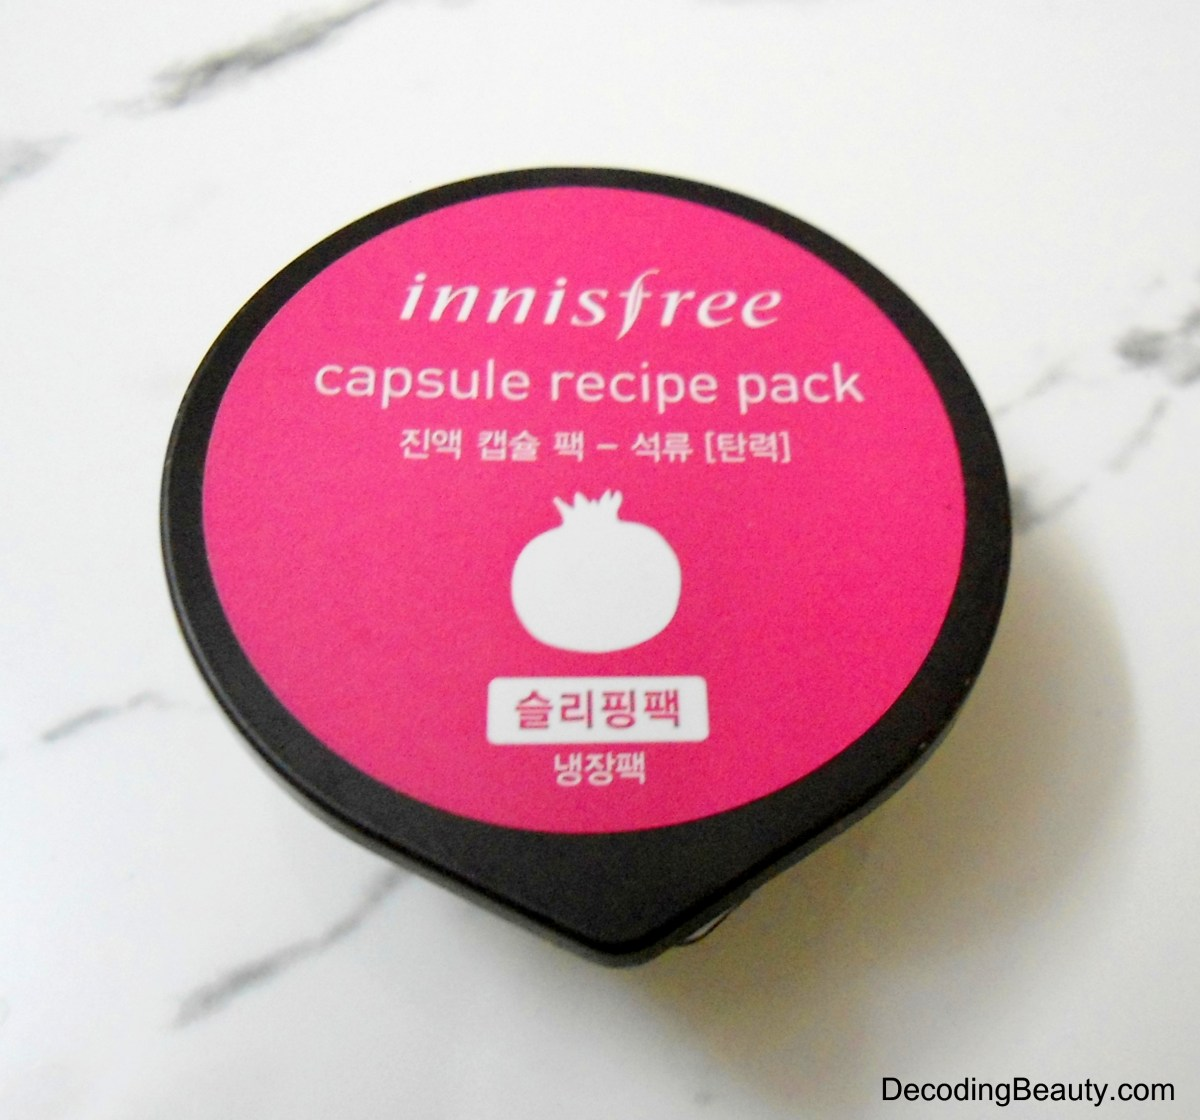 Innisfree Capsule Recipe Pack Pomegranate Review